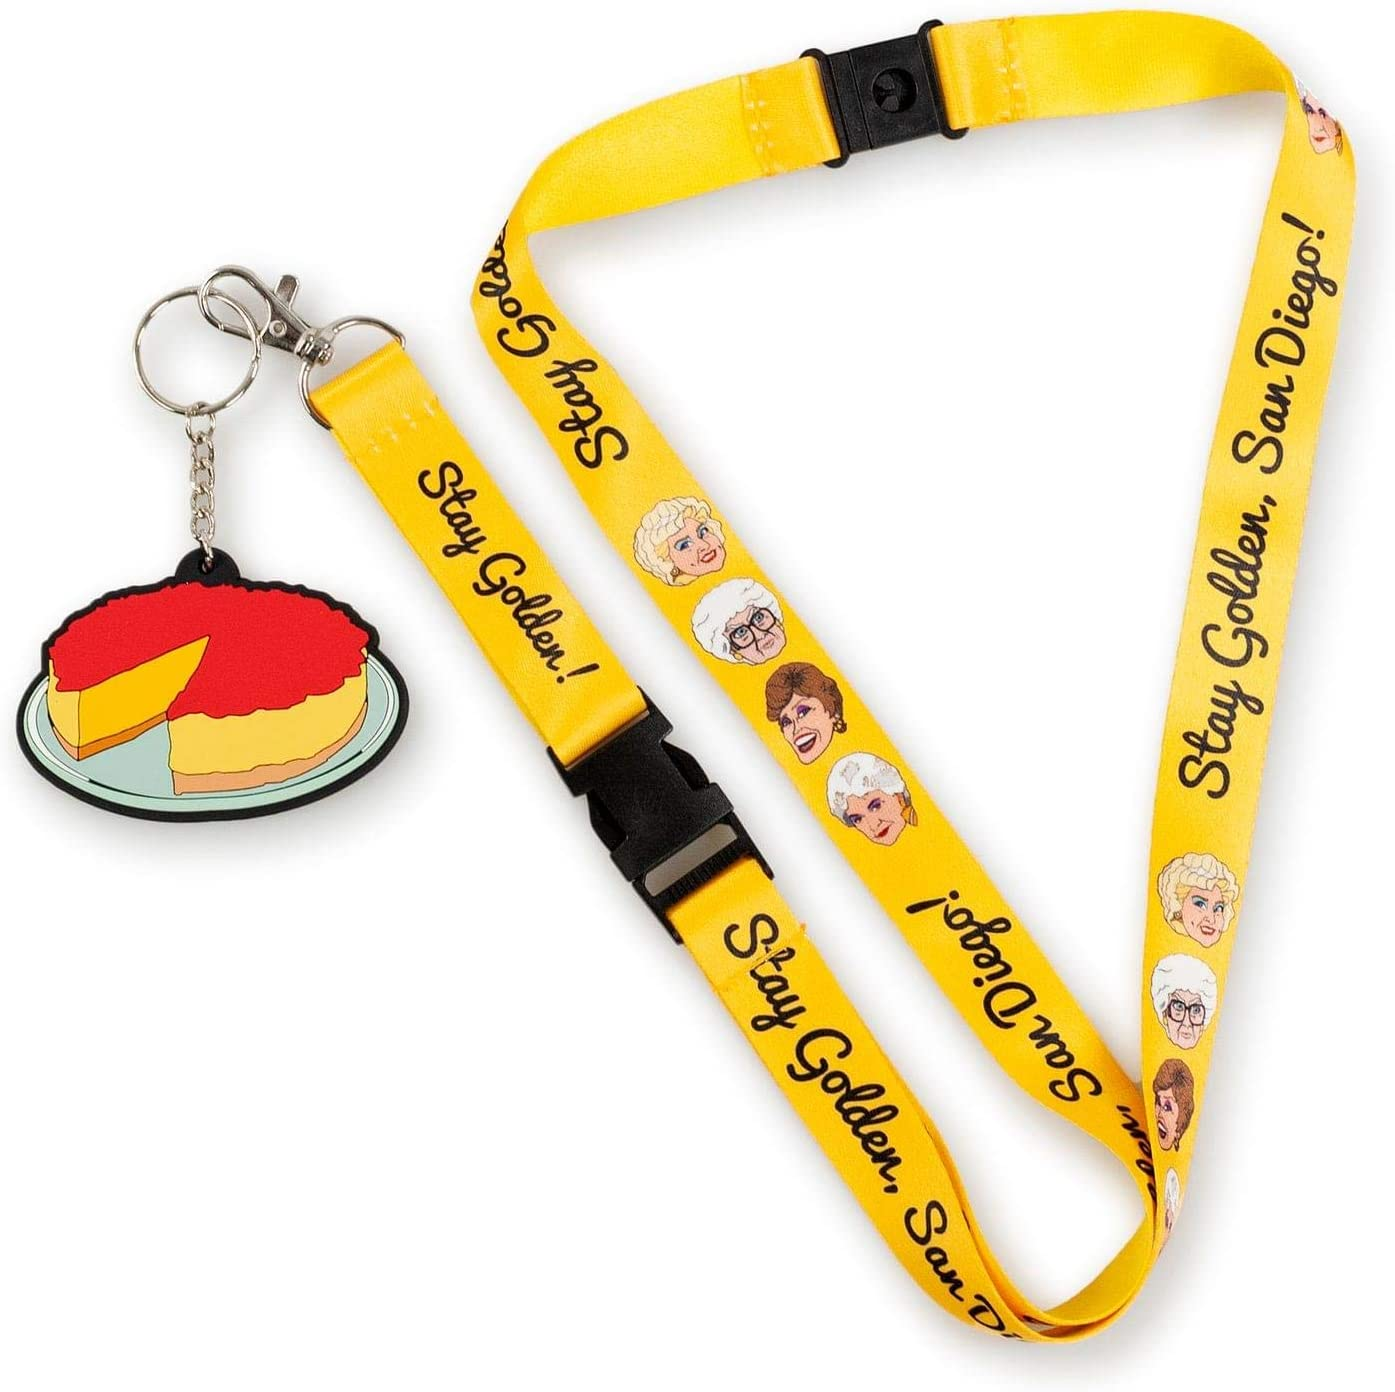 Lanyard w// Charm San Diego JUST FUNKY Golden Girls Special Edition Stay Golden